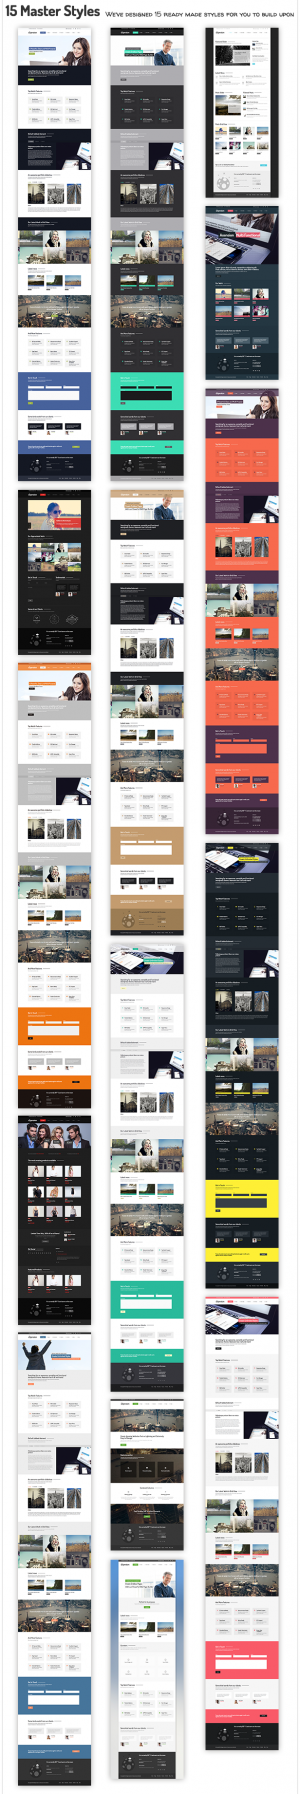 Axension is a powerful Multipurpose WordPress Theme. It has advance page builder features with w ...